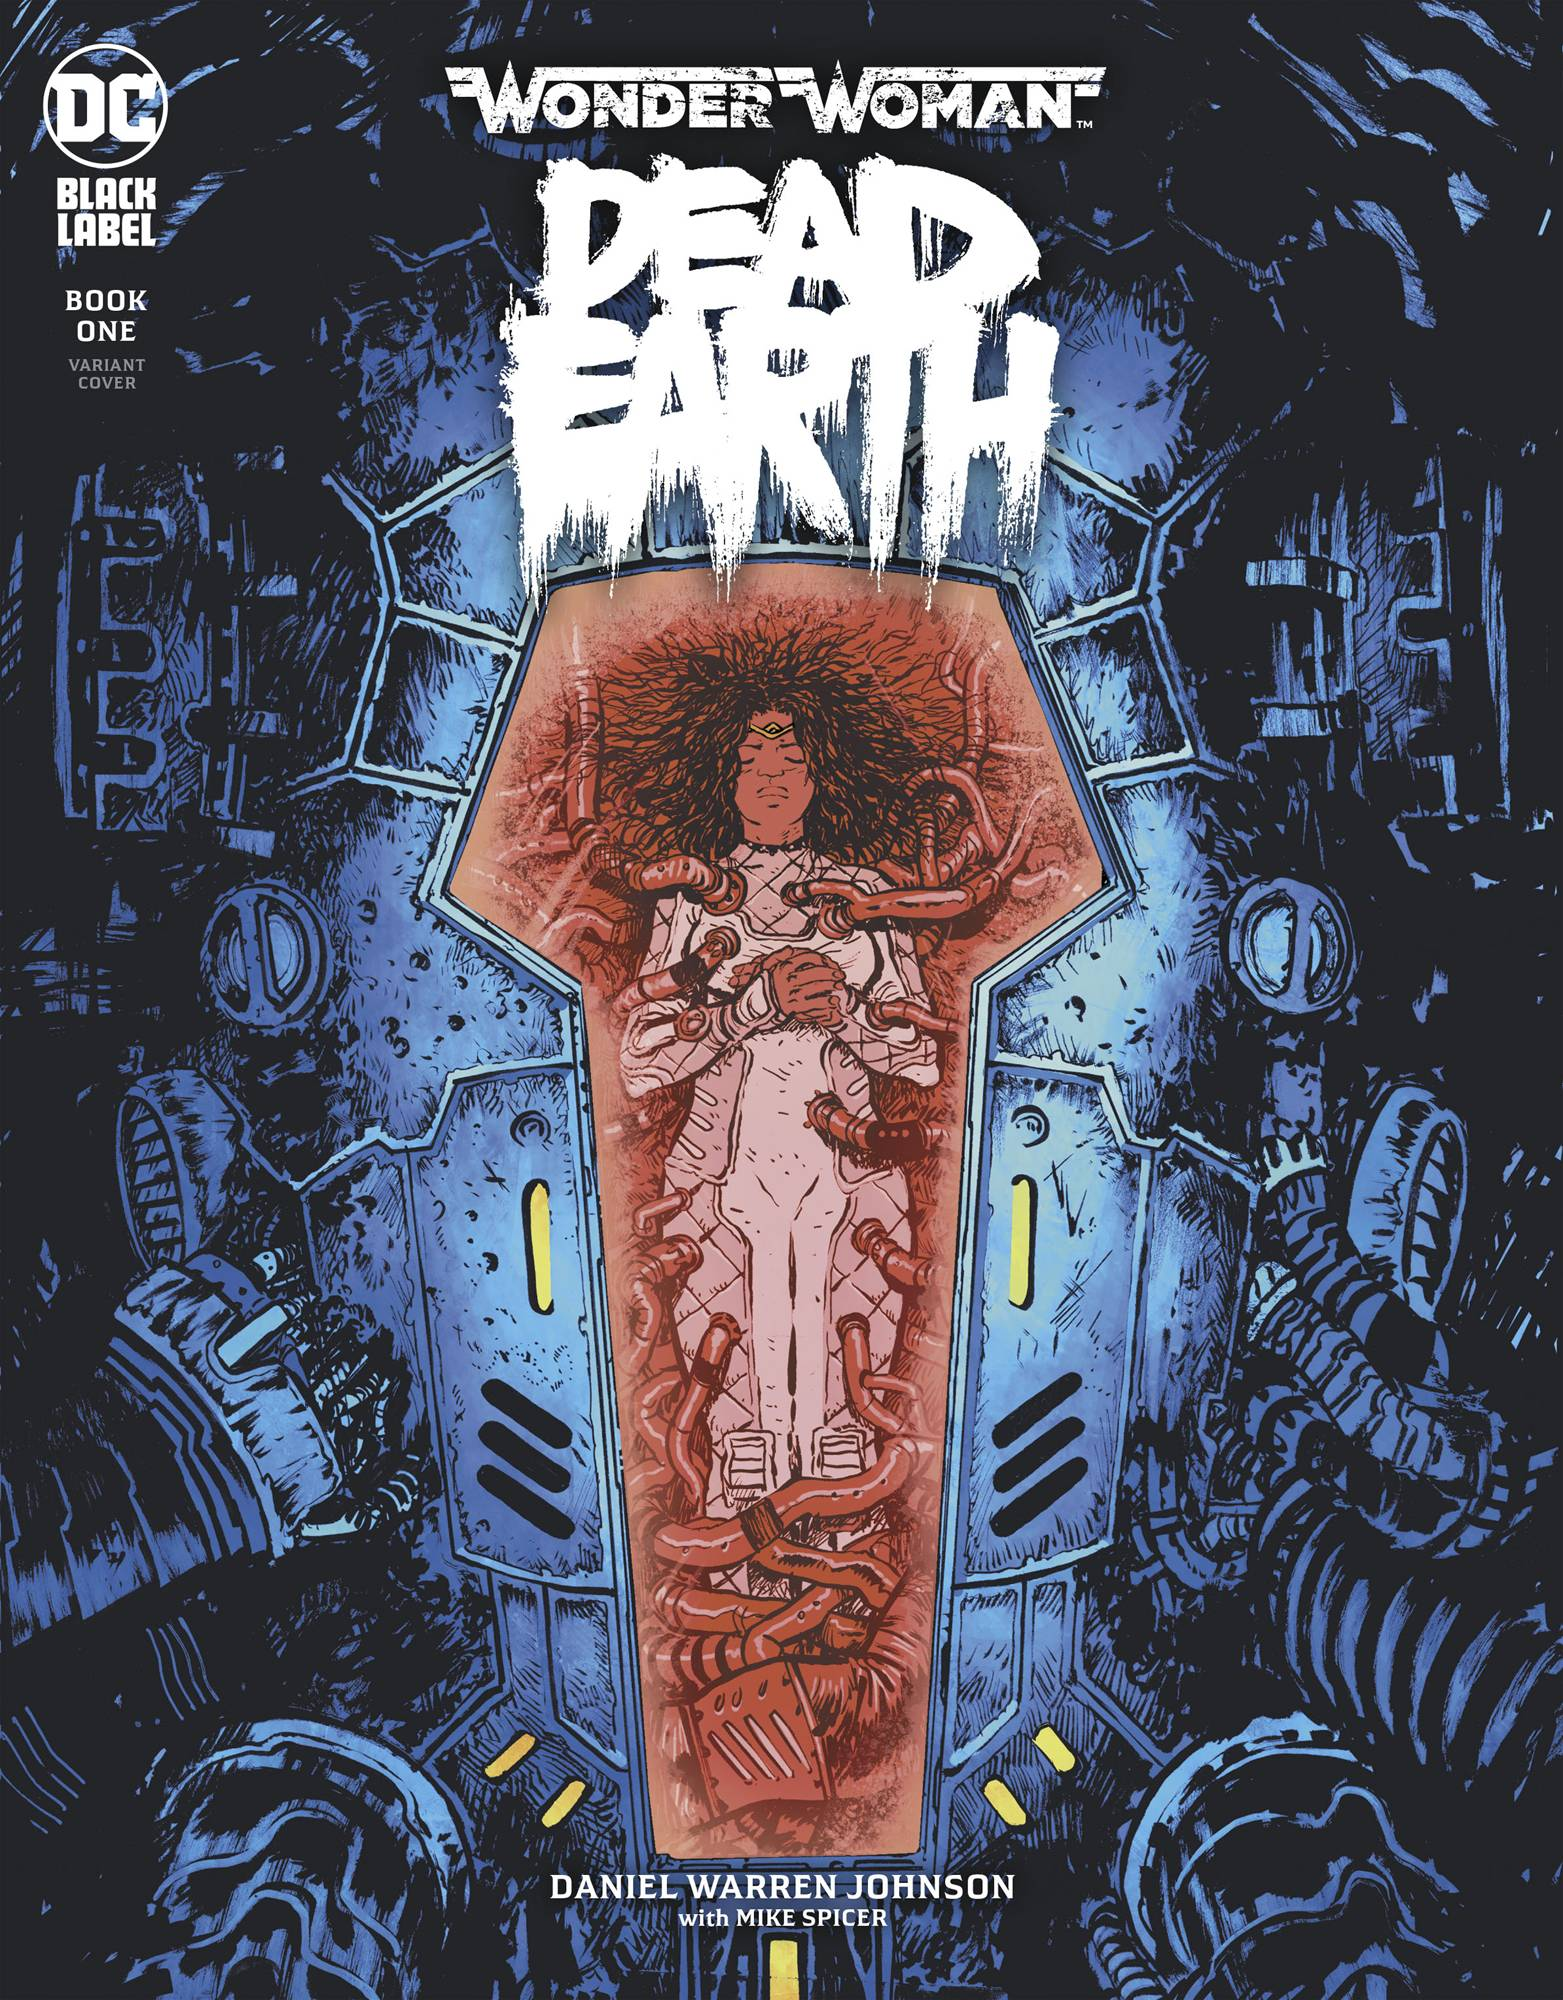 WONDER WOMAN DEAD EARTH #1 (OF 4) VAR ED (MR)